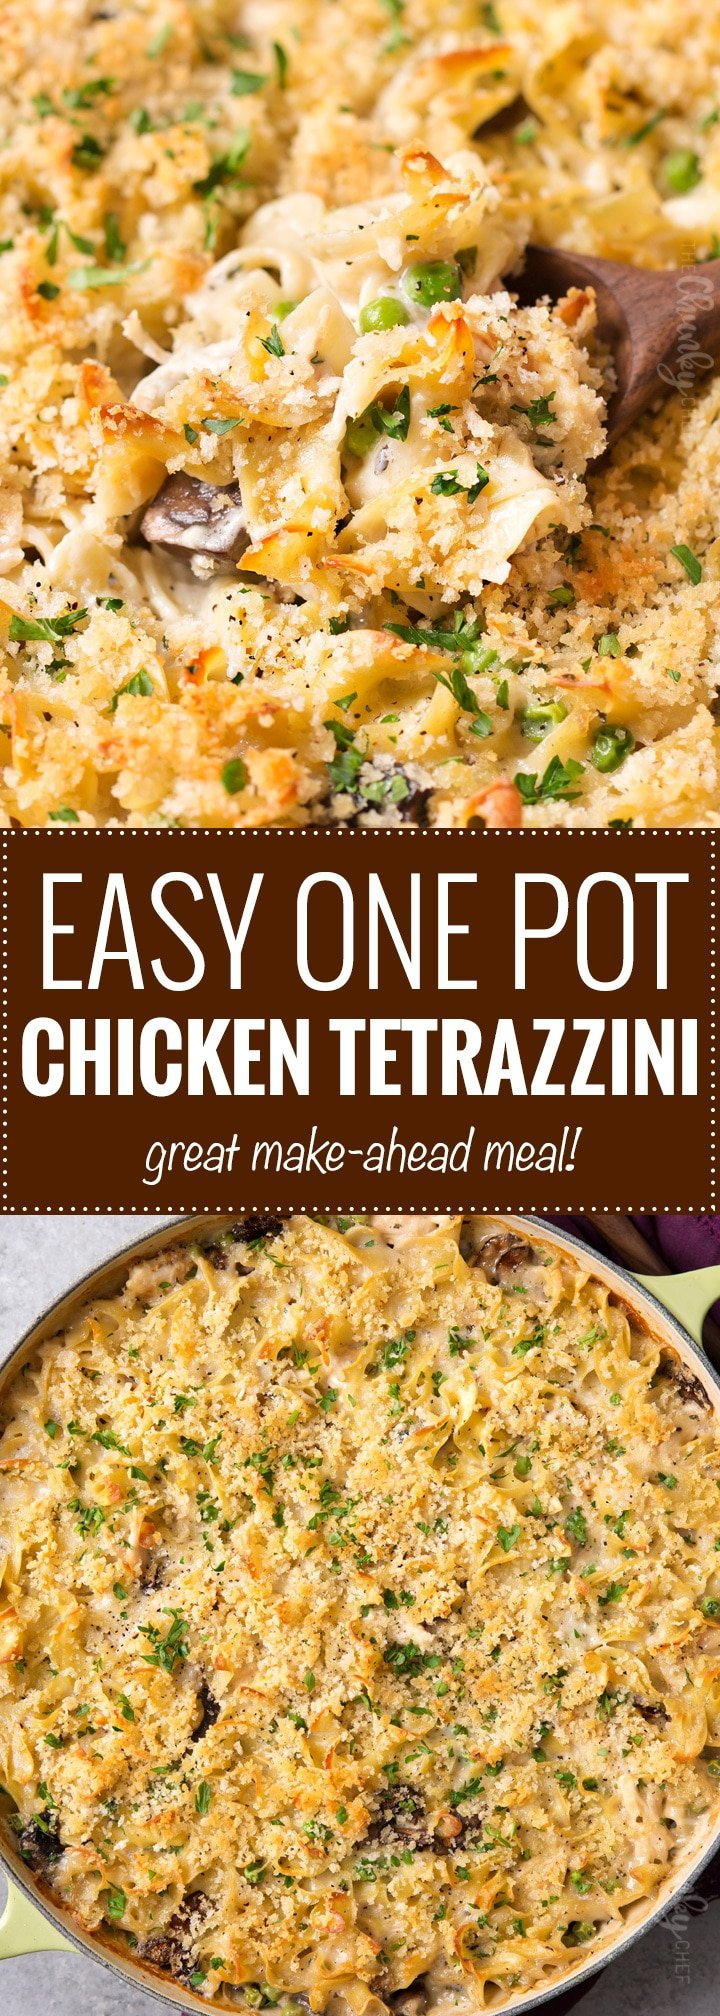 One Pot Chicken Tetrazzini | Perfect for an easy dinner, this chicken tetrazzini recipe is a comforting, incredibly creamy pasta bake with chicken, mushrooms!  This is one chicken casserole you'll be happy to eat, any time of year.  Great for make-ahead meals too! | The Chunky Chef | #chickentetrazzini #pastabake #casserole #chickenrecipes #italianrecipes